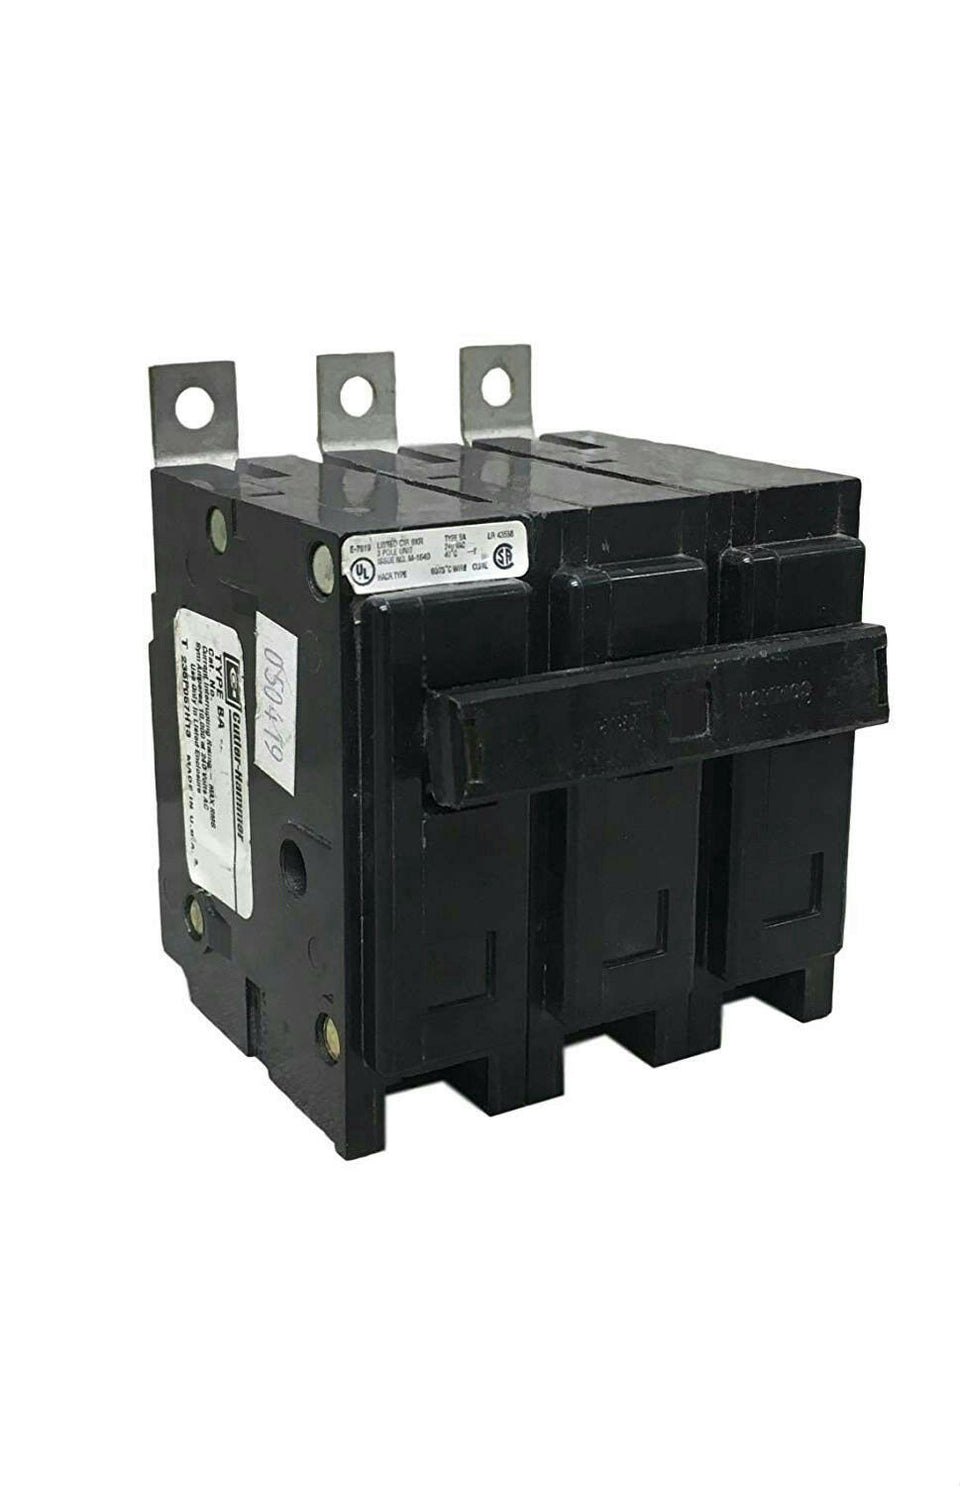 Eaton Cutler-Hammer BAB3025H Bolt-On Circuit Breaker 3 Pole 25A 240V BAB 10 kAIC